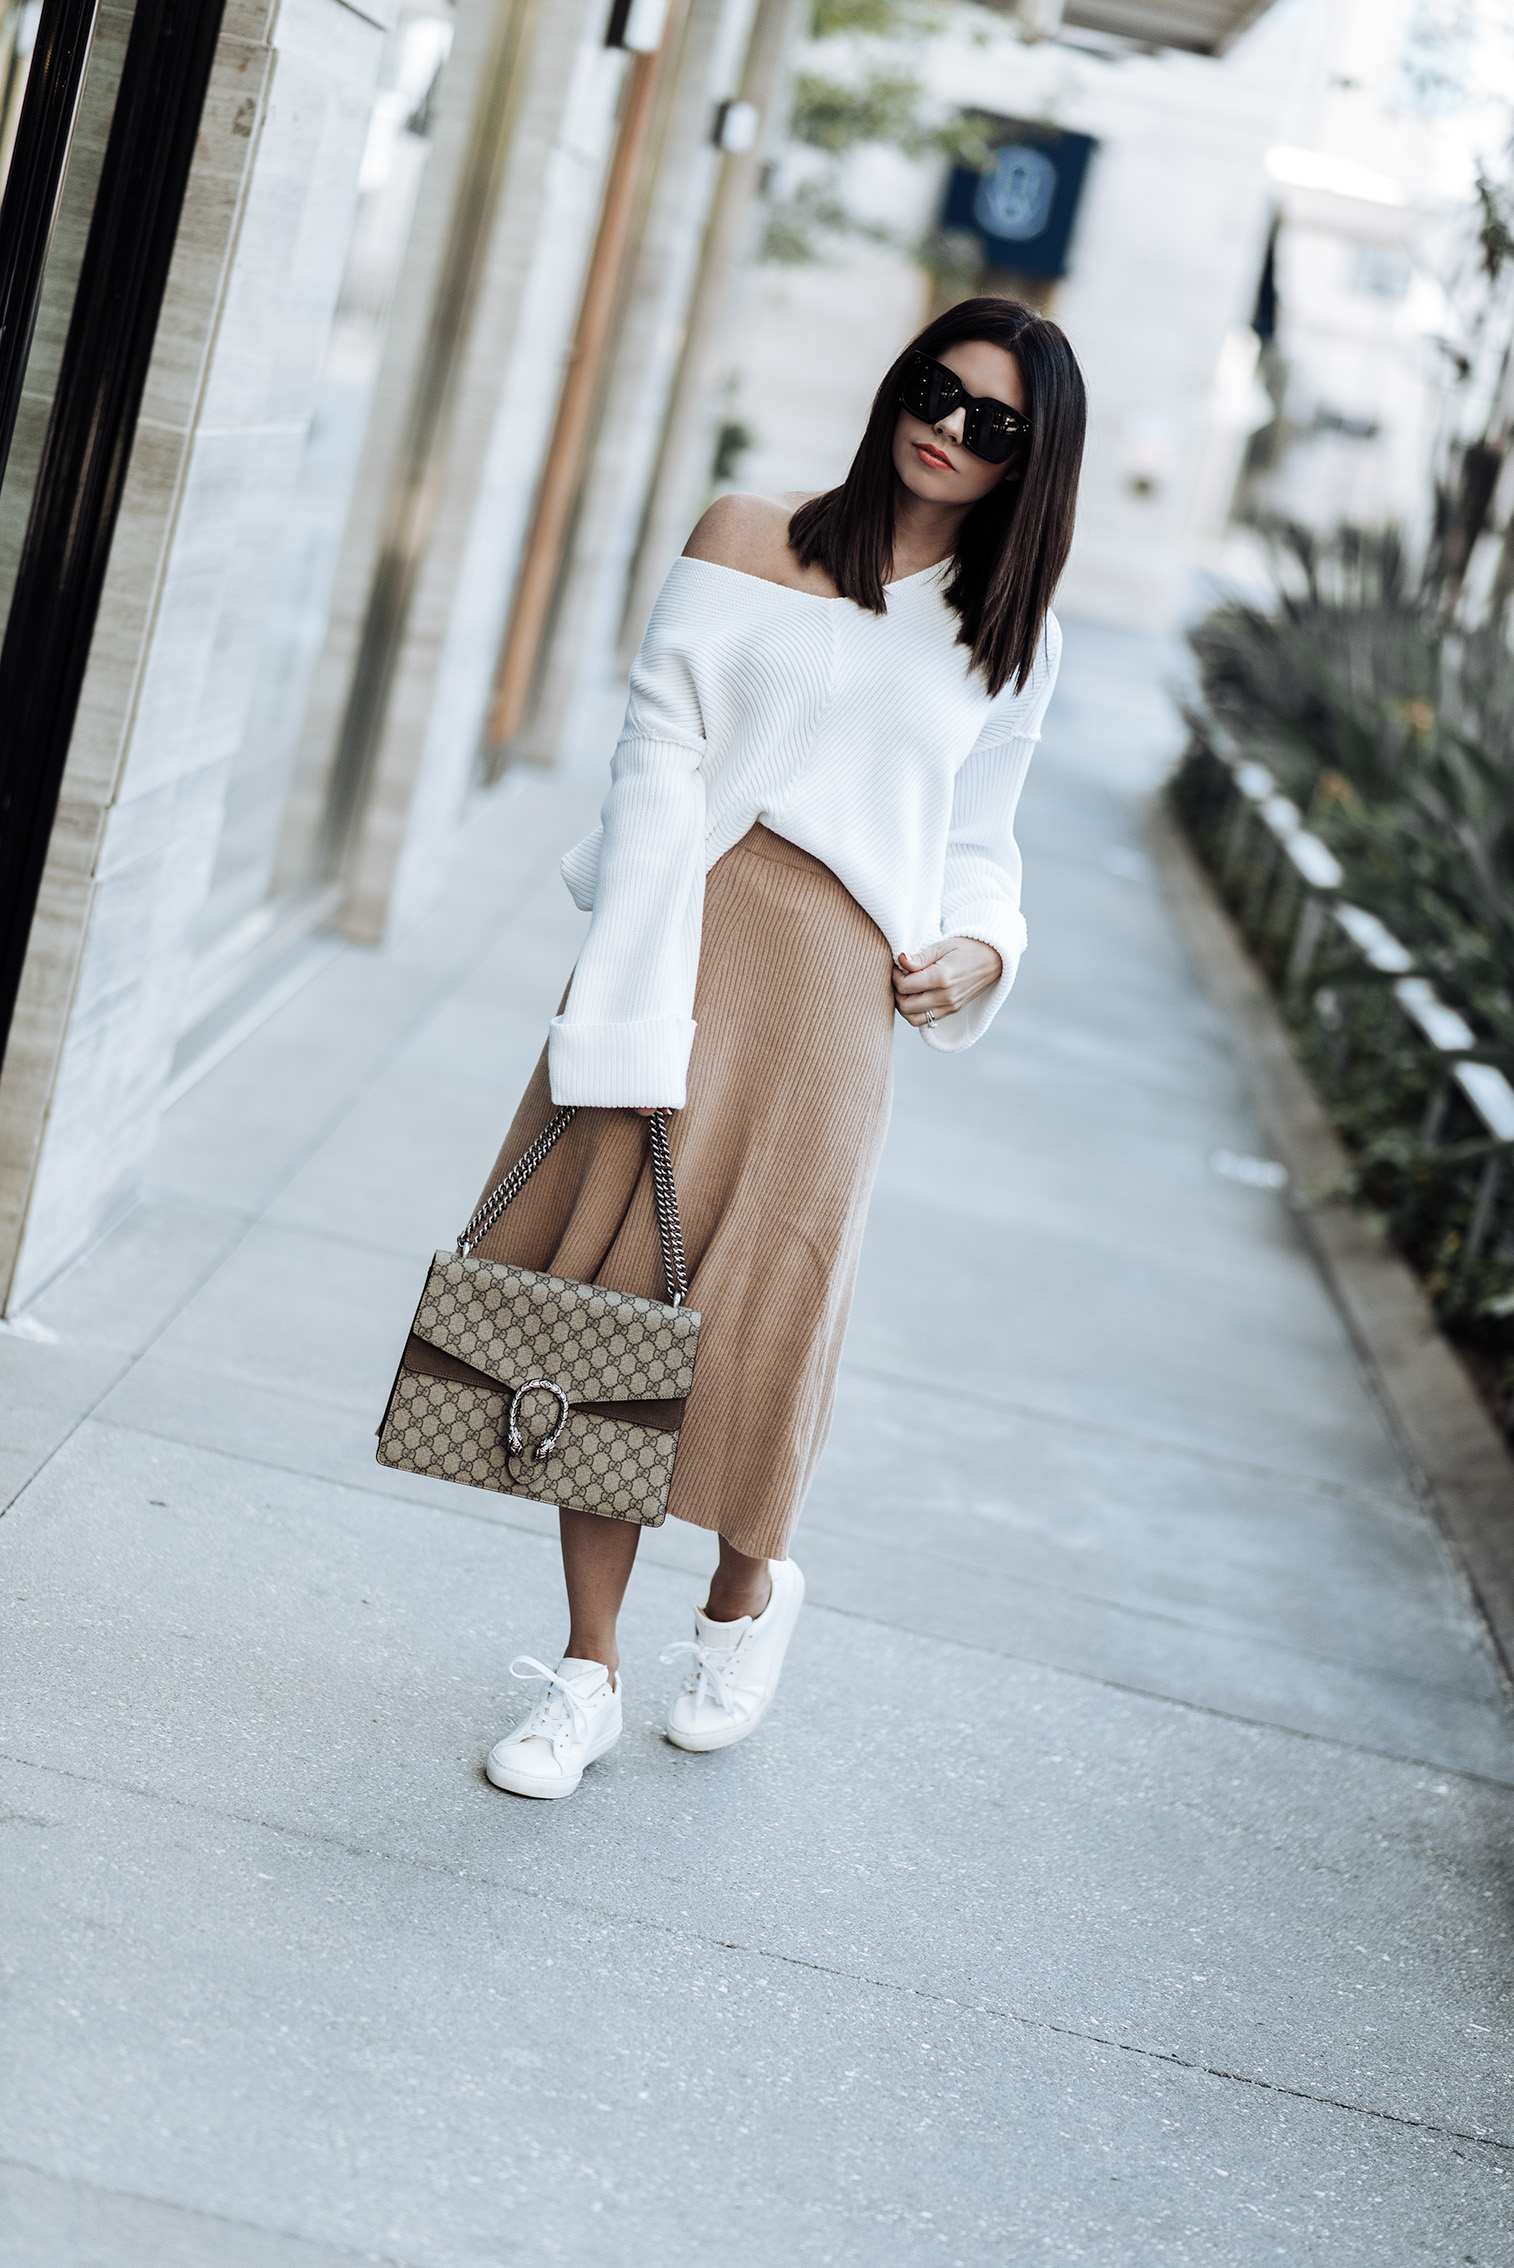 Friday feels | Shop the look | The color of this maxi skirt is so perfect for fall! I love how minimal and clean it looks paired with this oversized knit (also on sale). This is probably my favorite look for those days you want to be cozy but still look put together! It's so effortlessly clean and minimal.